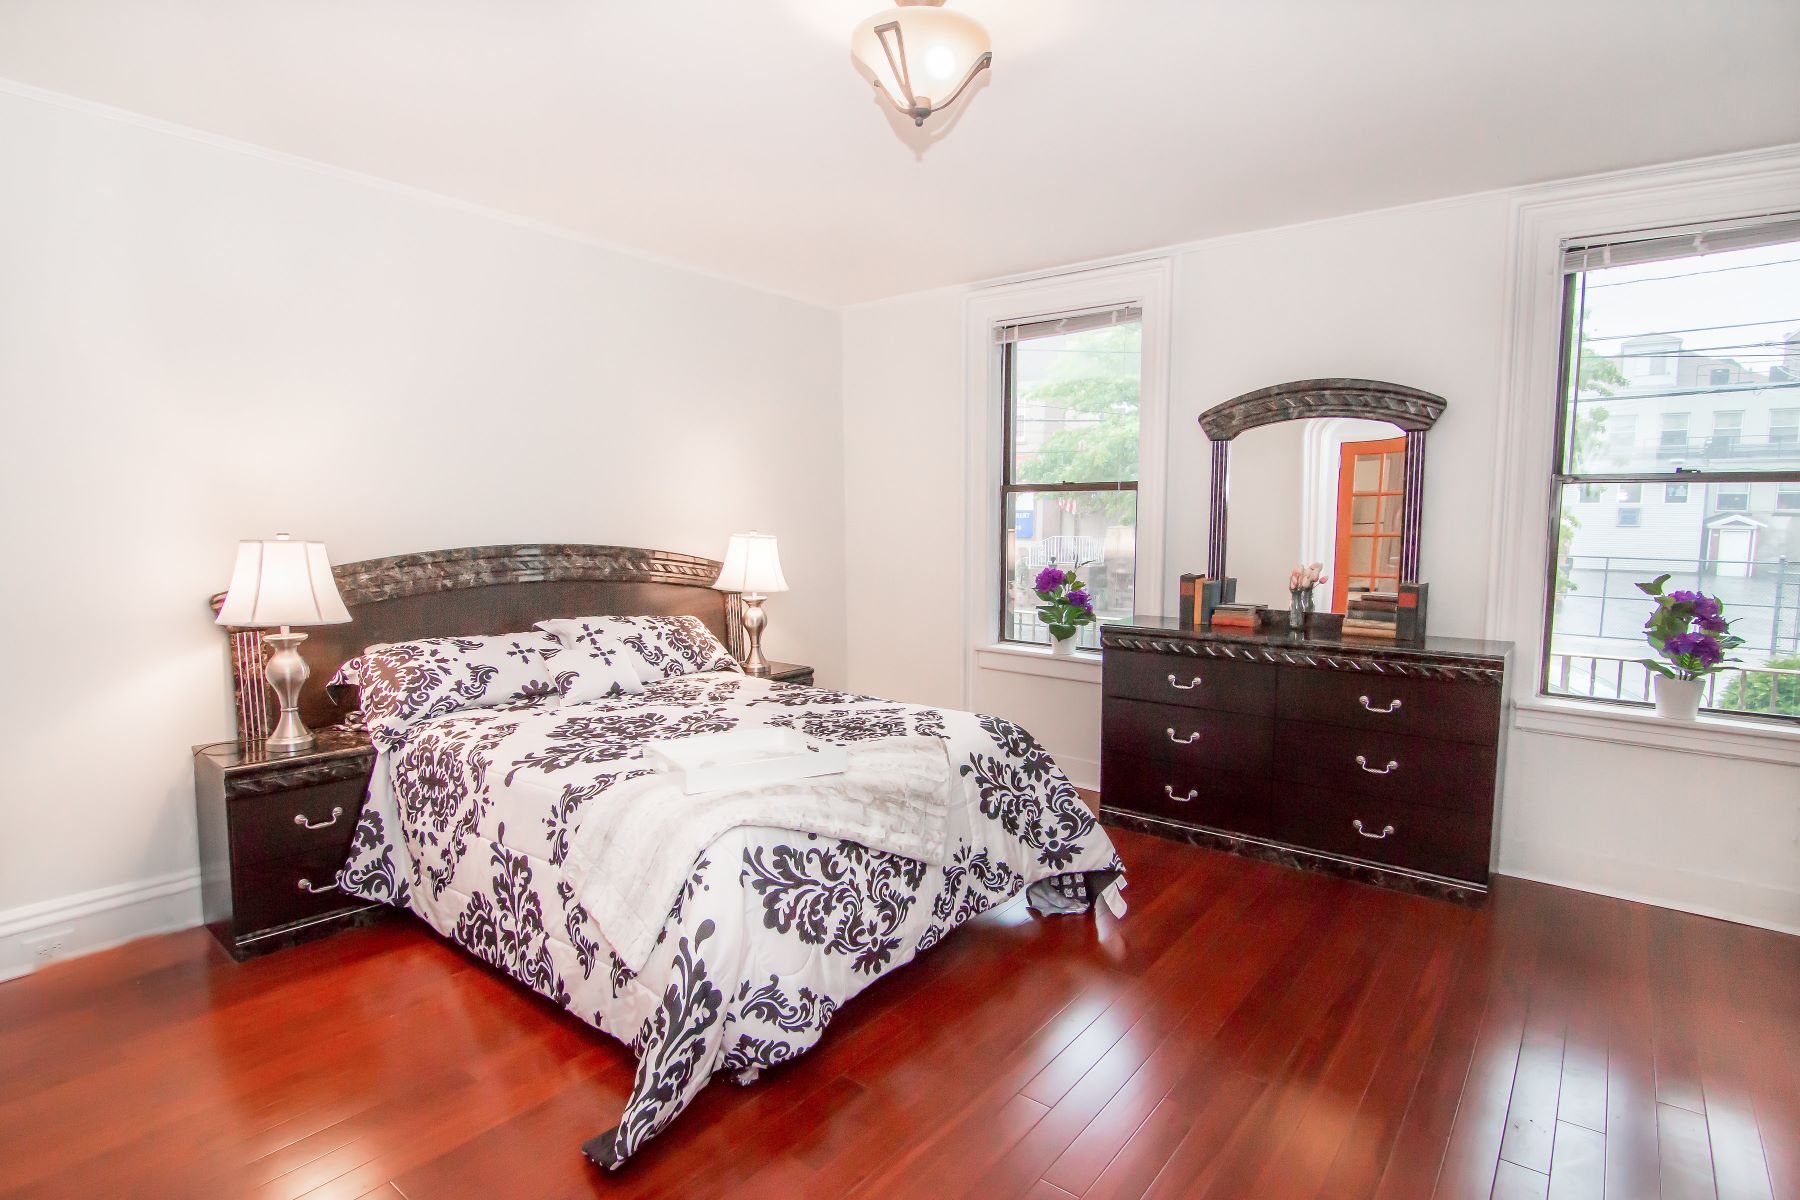 Multi-Family Home for Sale at Spacious 2 family home with a fabulous location 19 West 9th Street Bayonne, New Jersey 07002 United States